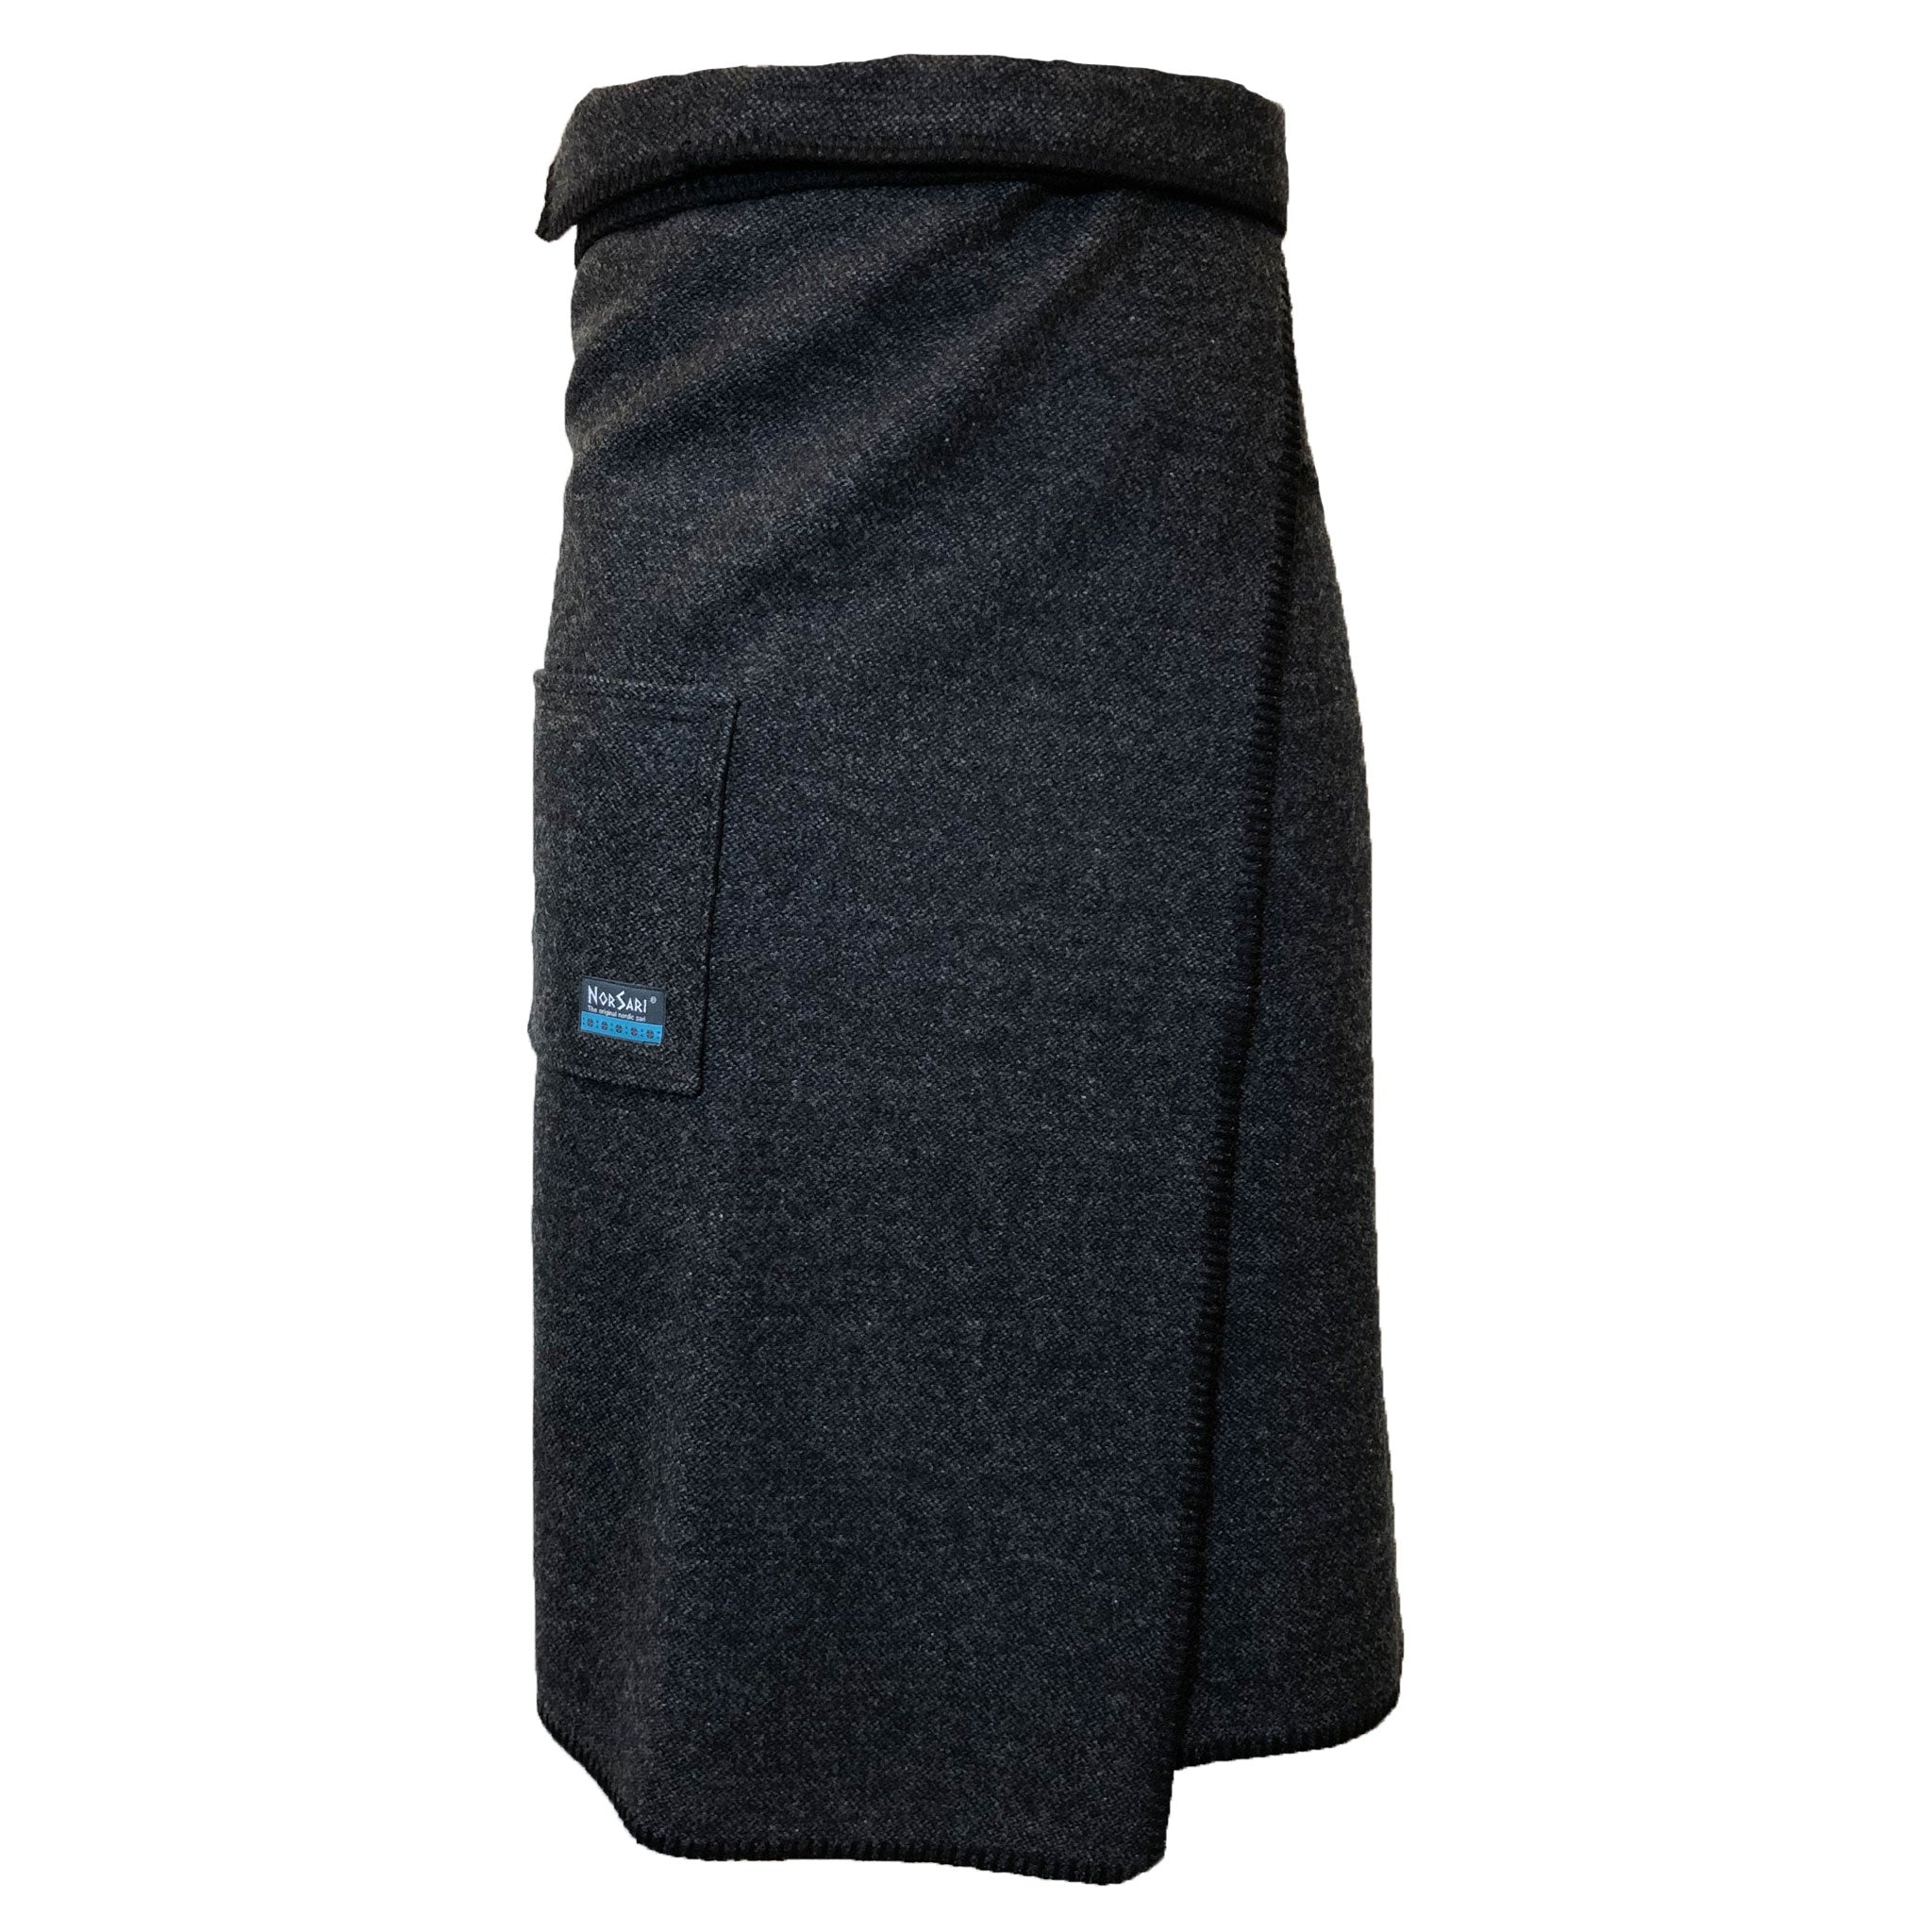 The Merino Ultrasoft